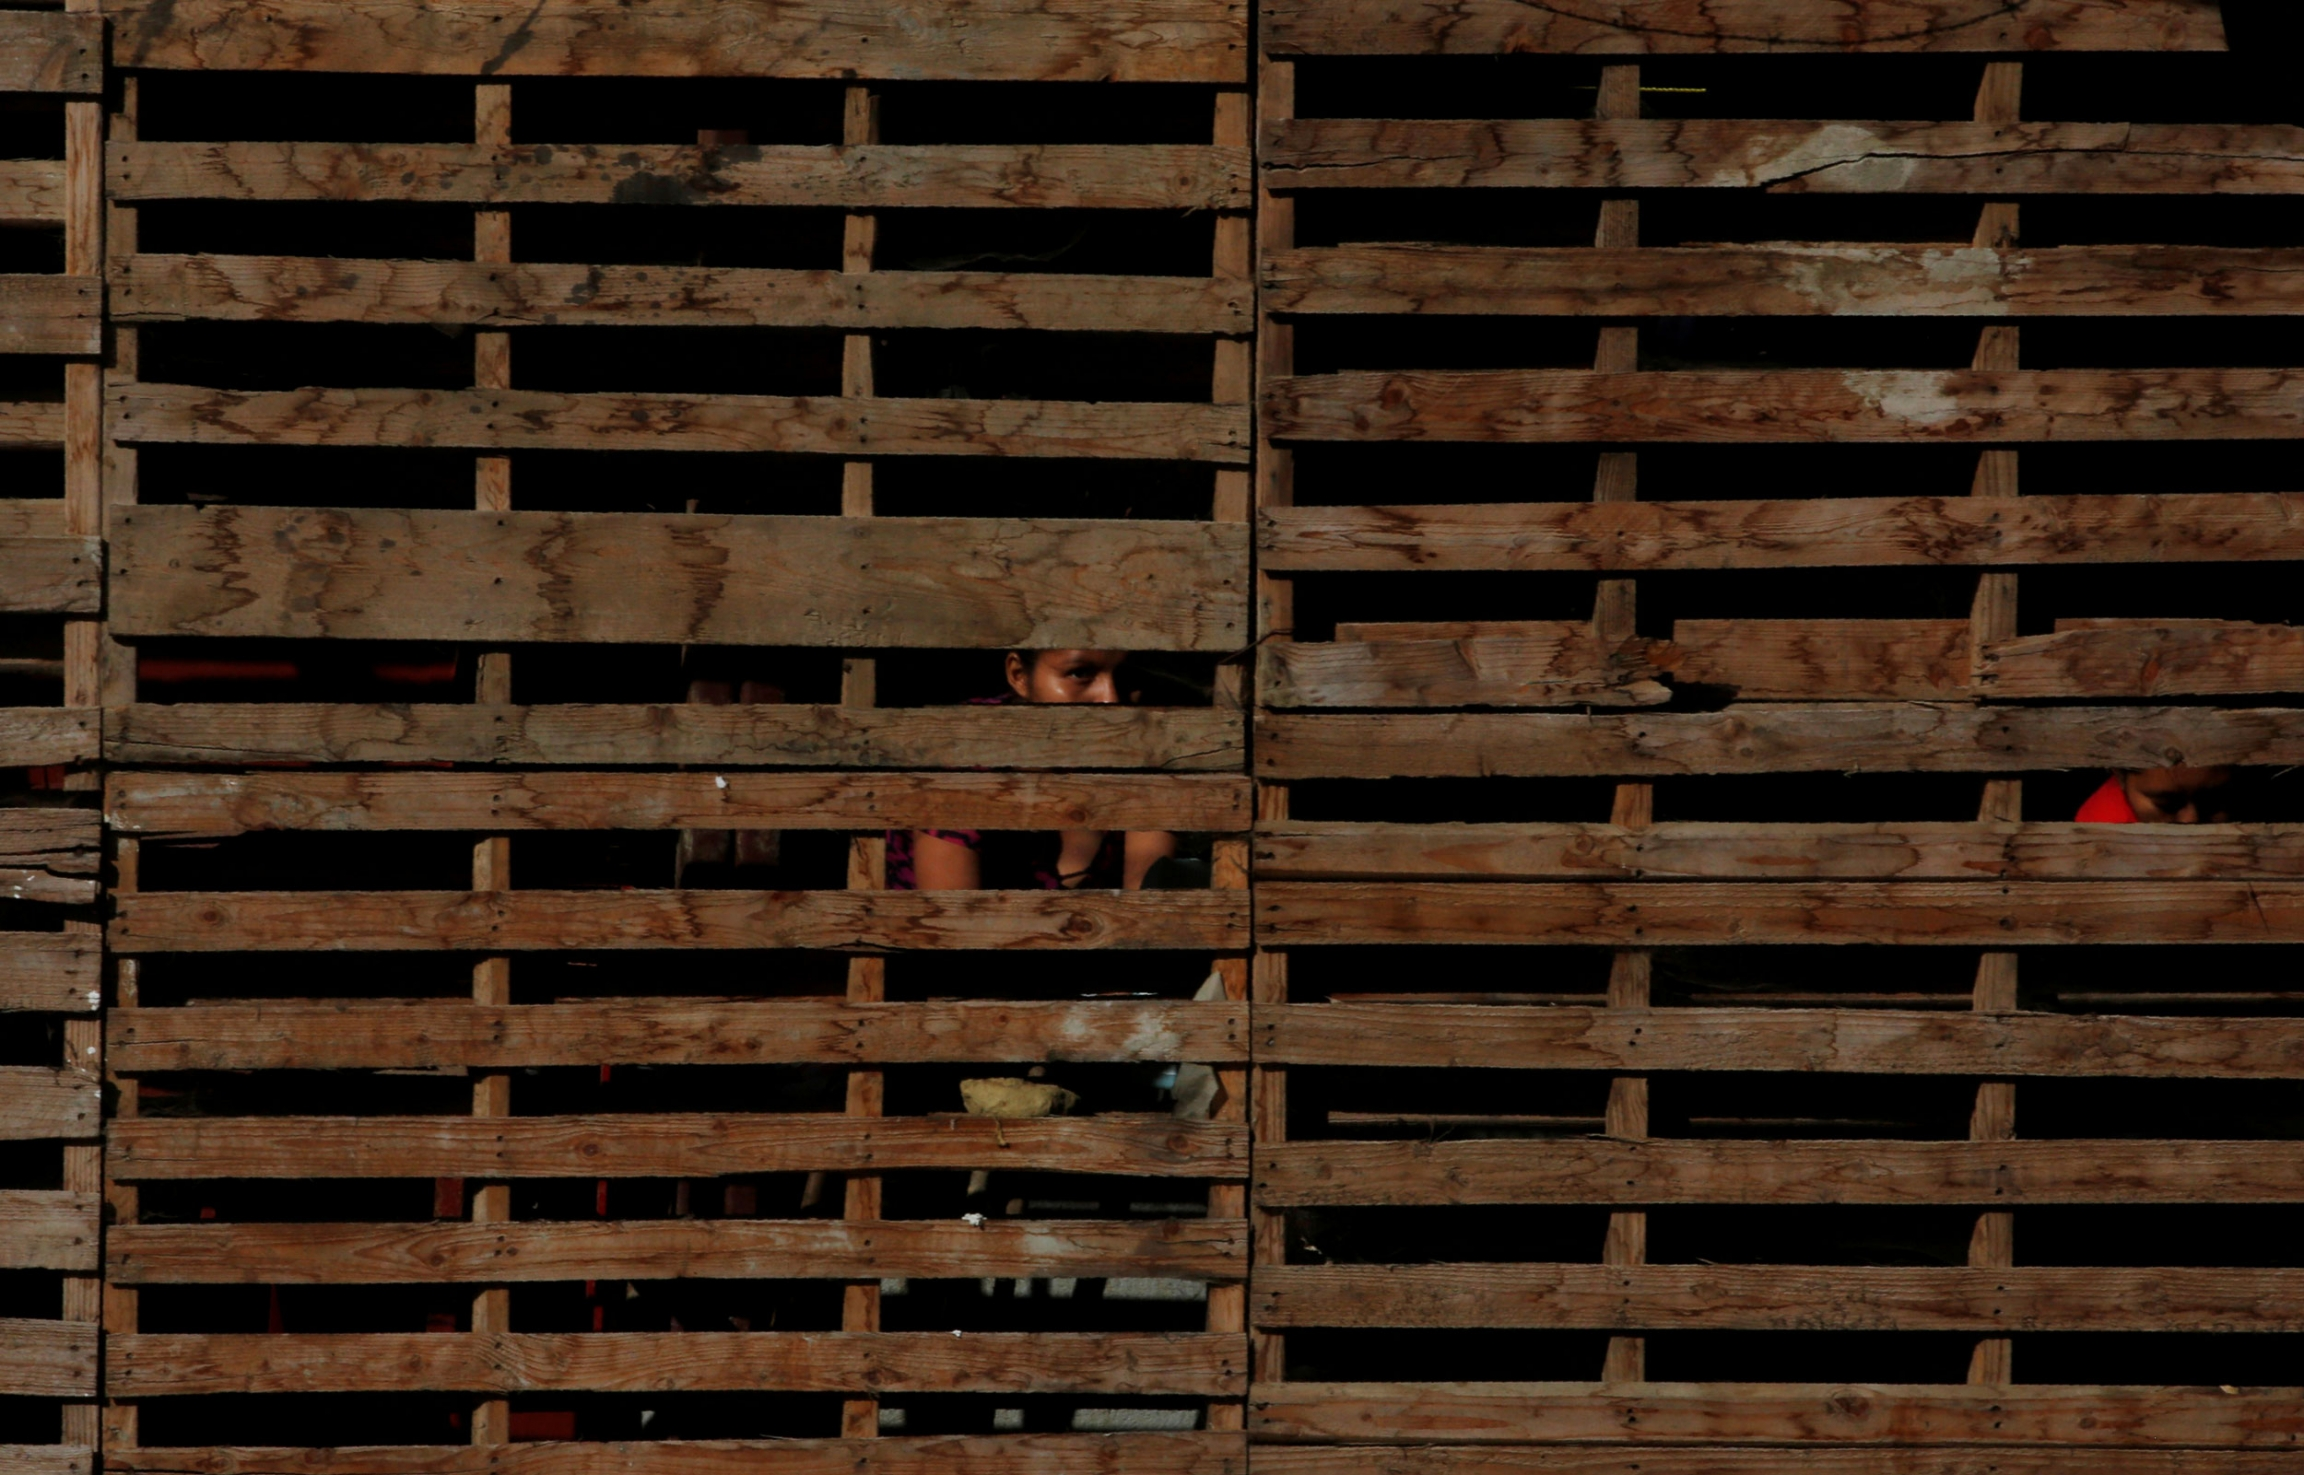 Horizontal wooden slats are shown across the entire photograph with the face of a woman in shadown.